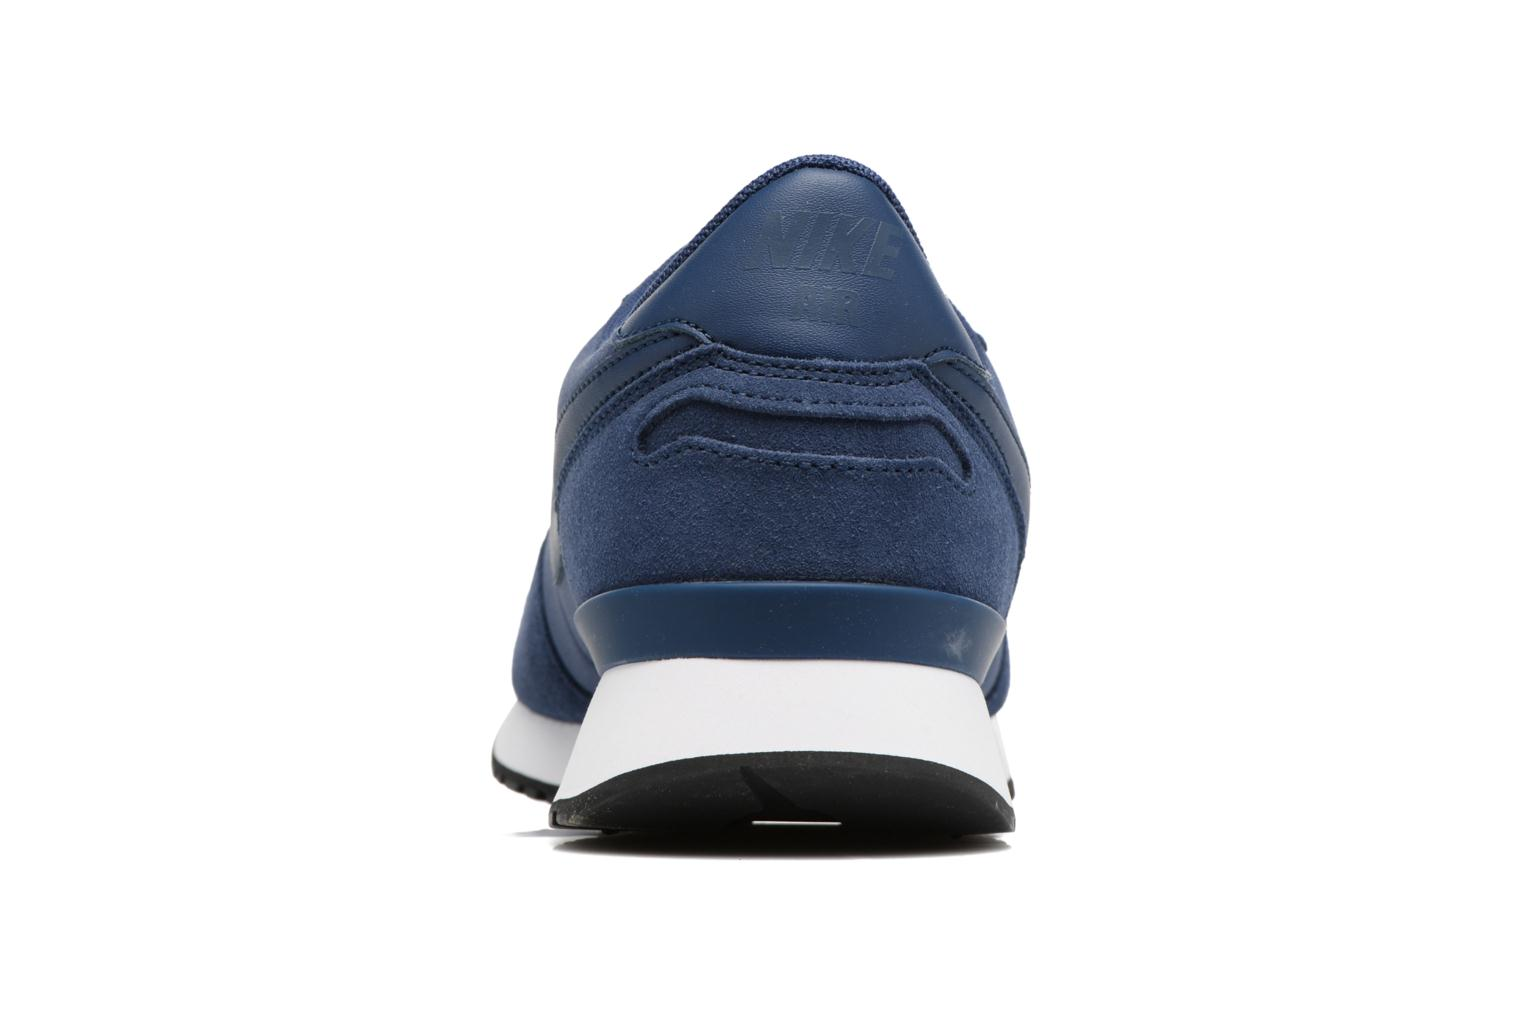 Nike Air Vrtx Ltr Navy/Navy-White-Black